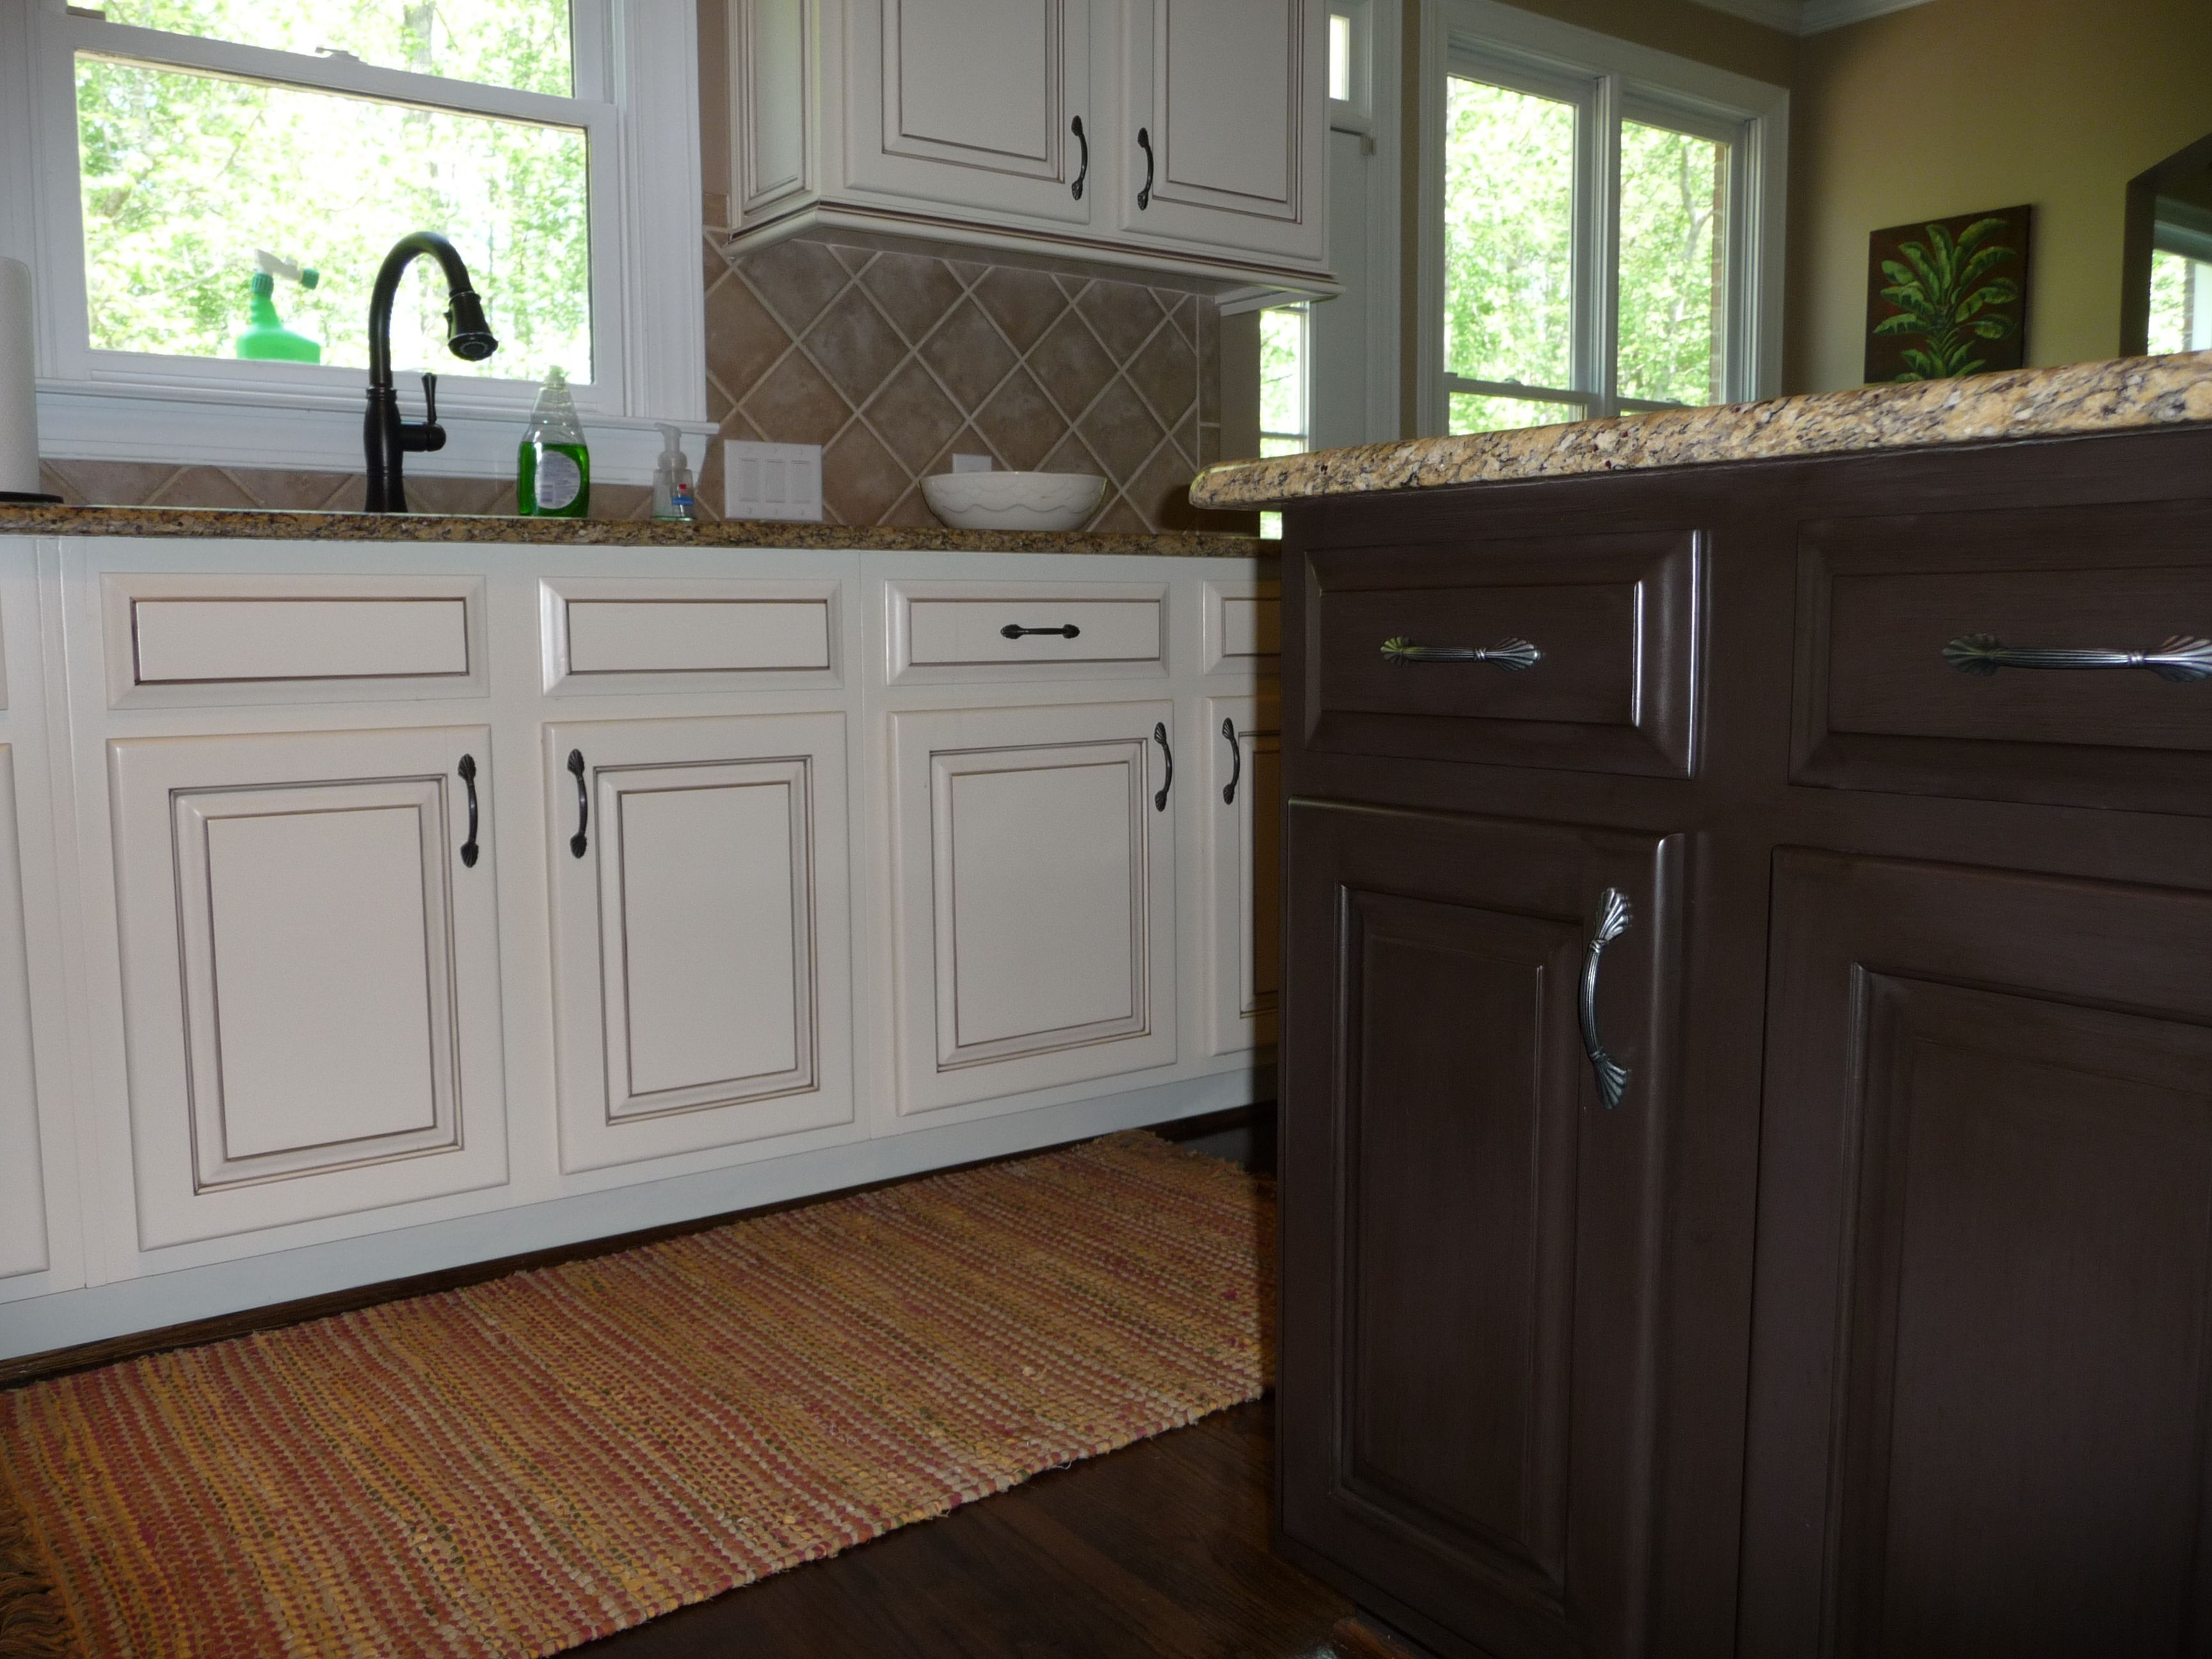 My Dream Kitchen At Last Painted Maple Cabinets Antique White Almond Added Light Rail At The Bottom And Rope Crown Kitchen Cabinets Kitchen Maple Cabinets